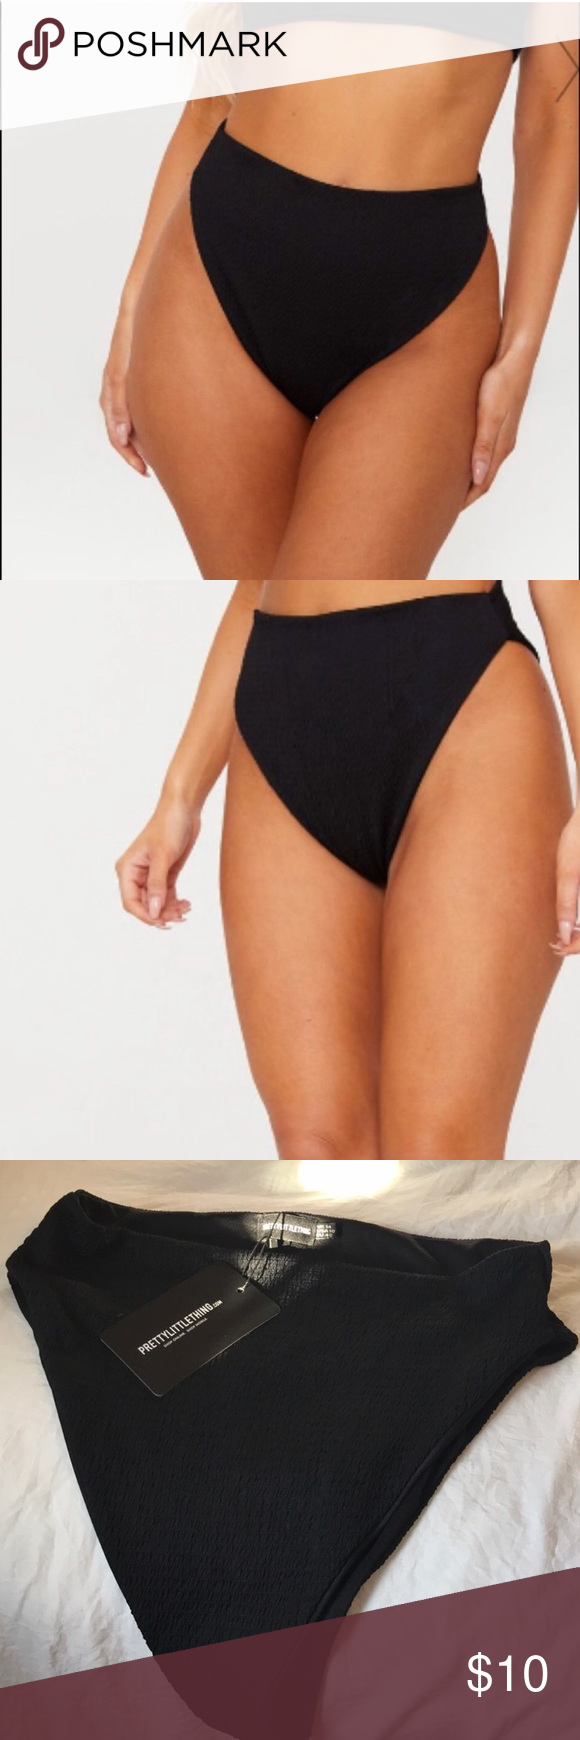 8fd8526331 PLT bikini bottoms Black high waisted bikini bottoms from  PrettyLittleThing. Very flattering but a little too big for me!! Recently  purchased. NWT ...